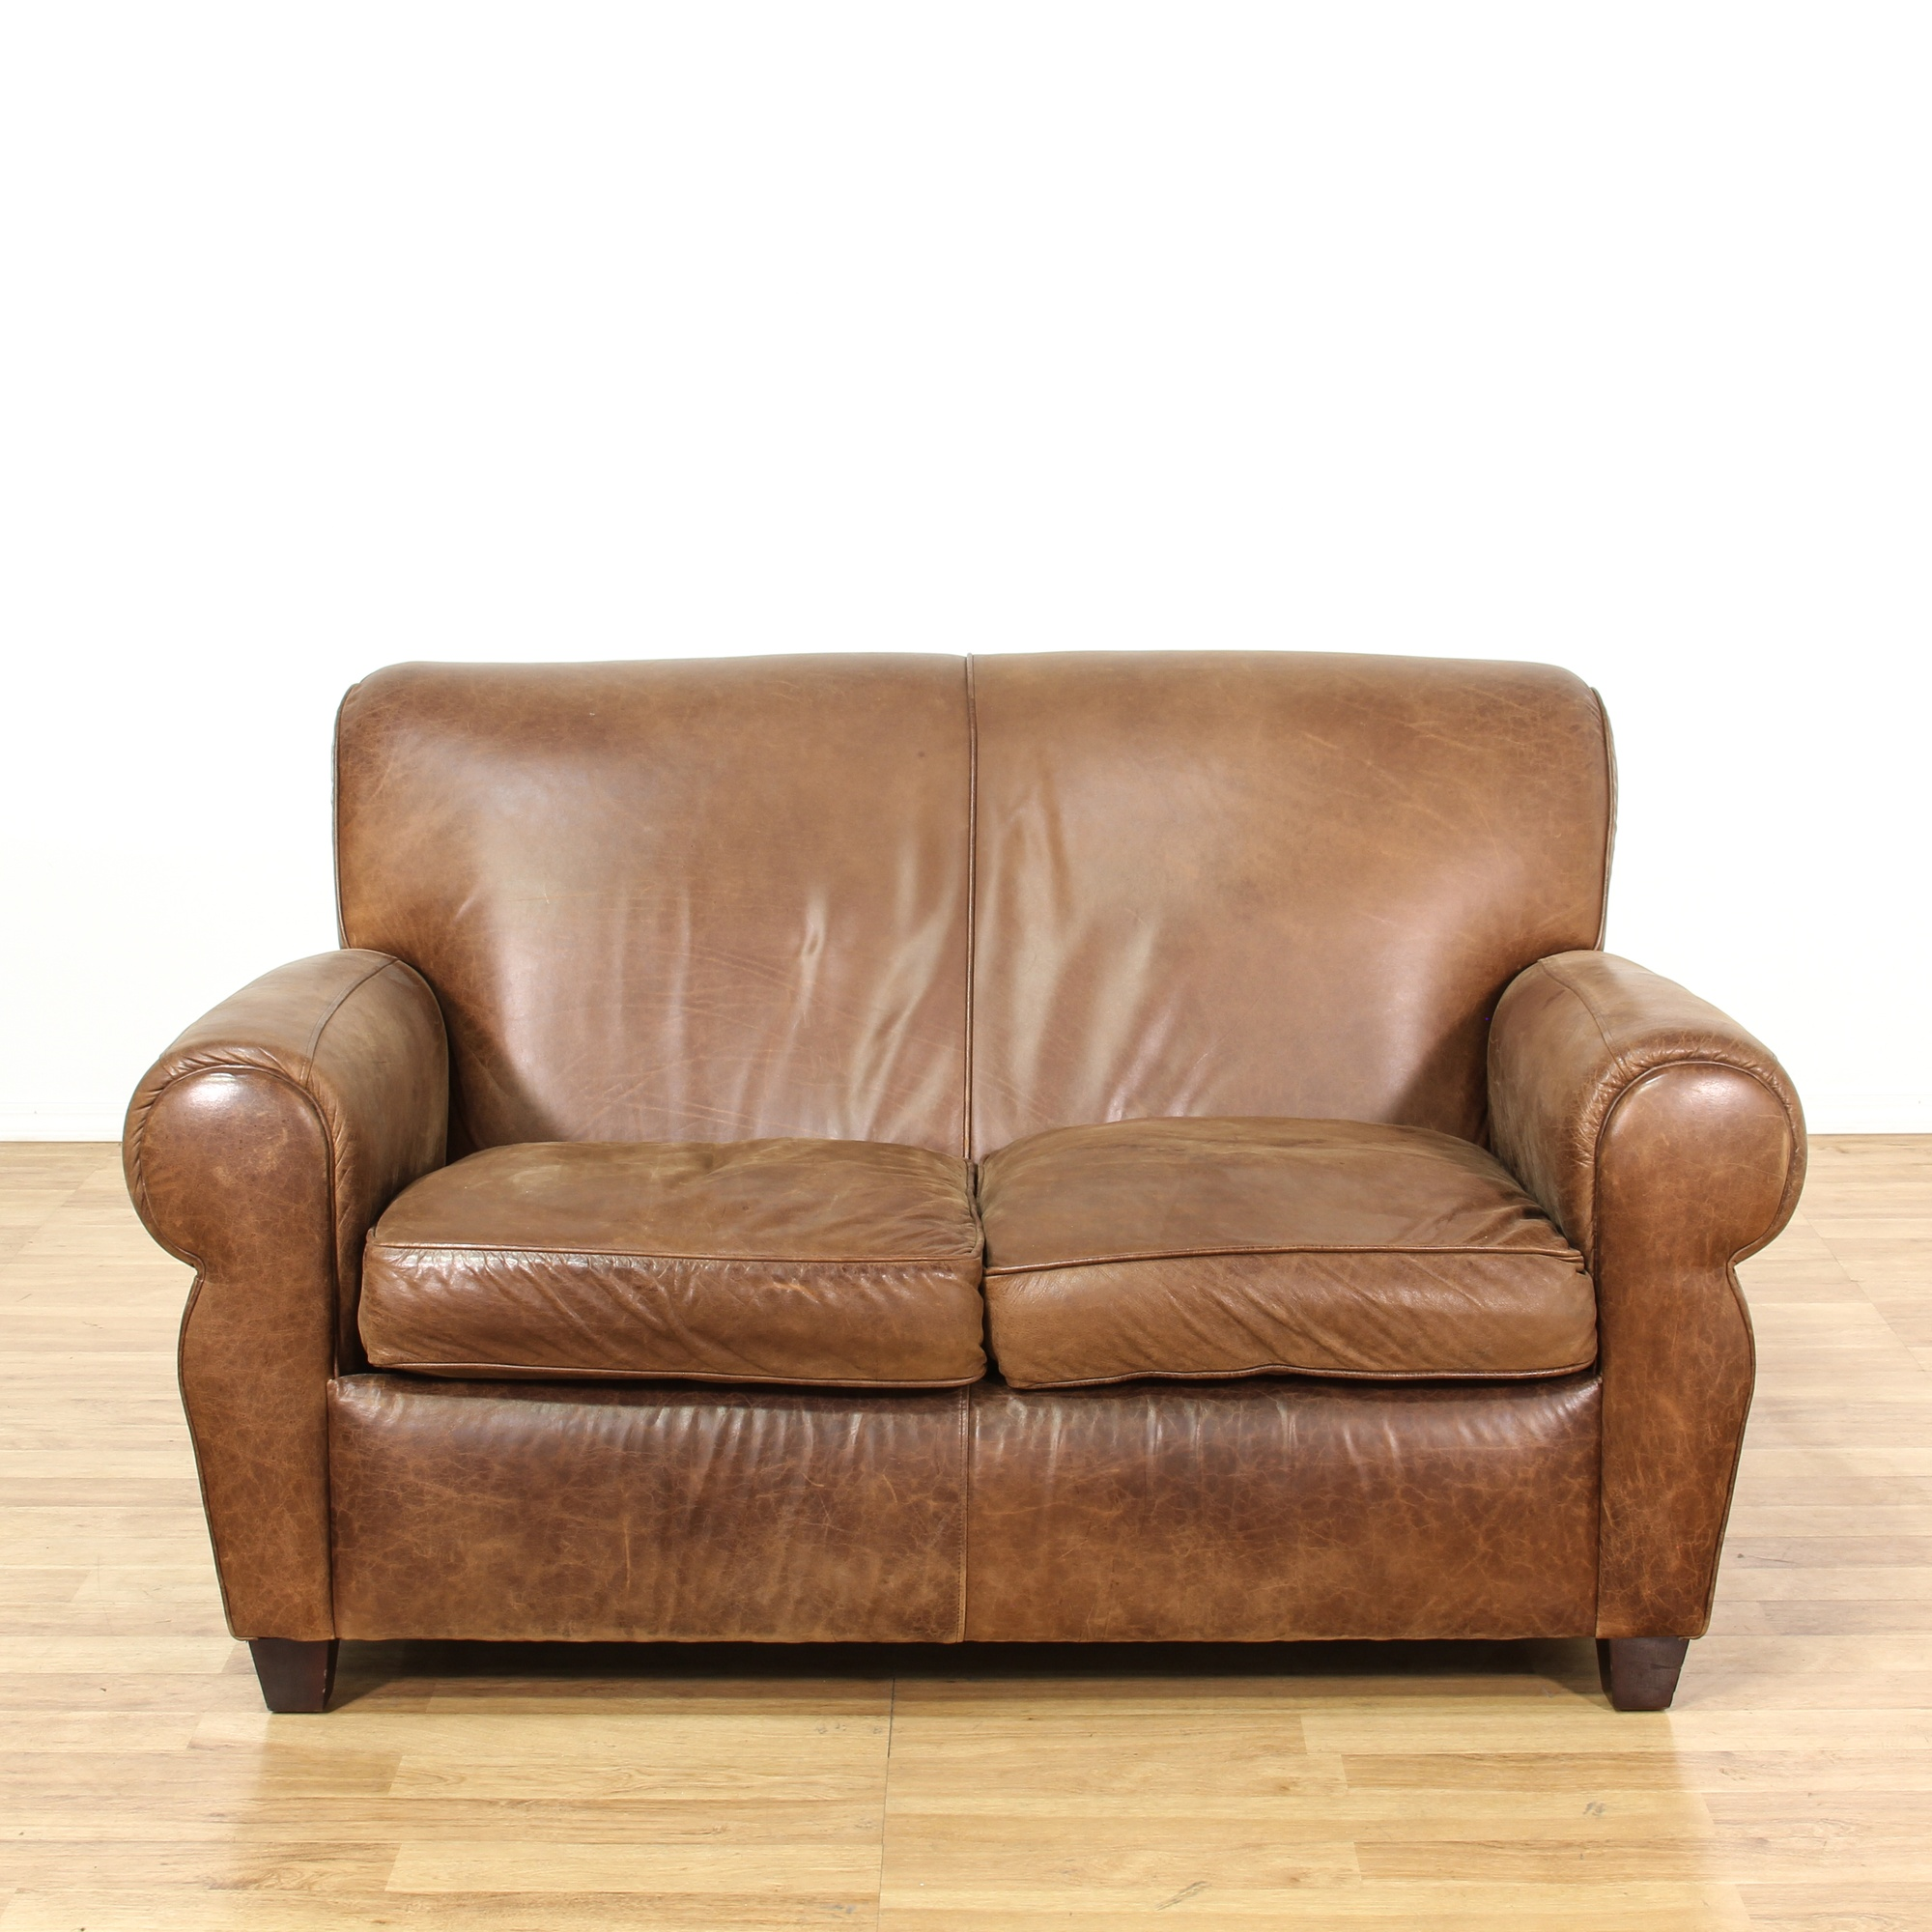 Distressed Brown Leather Loveseat Sofa